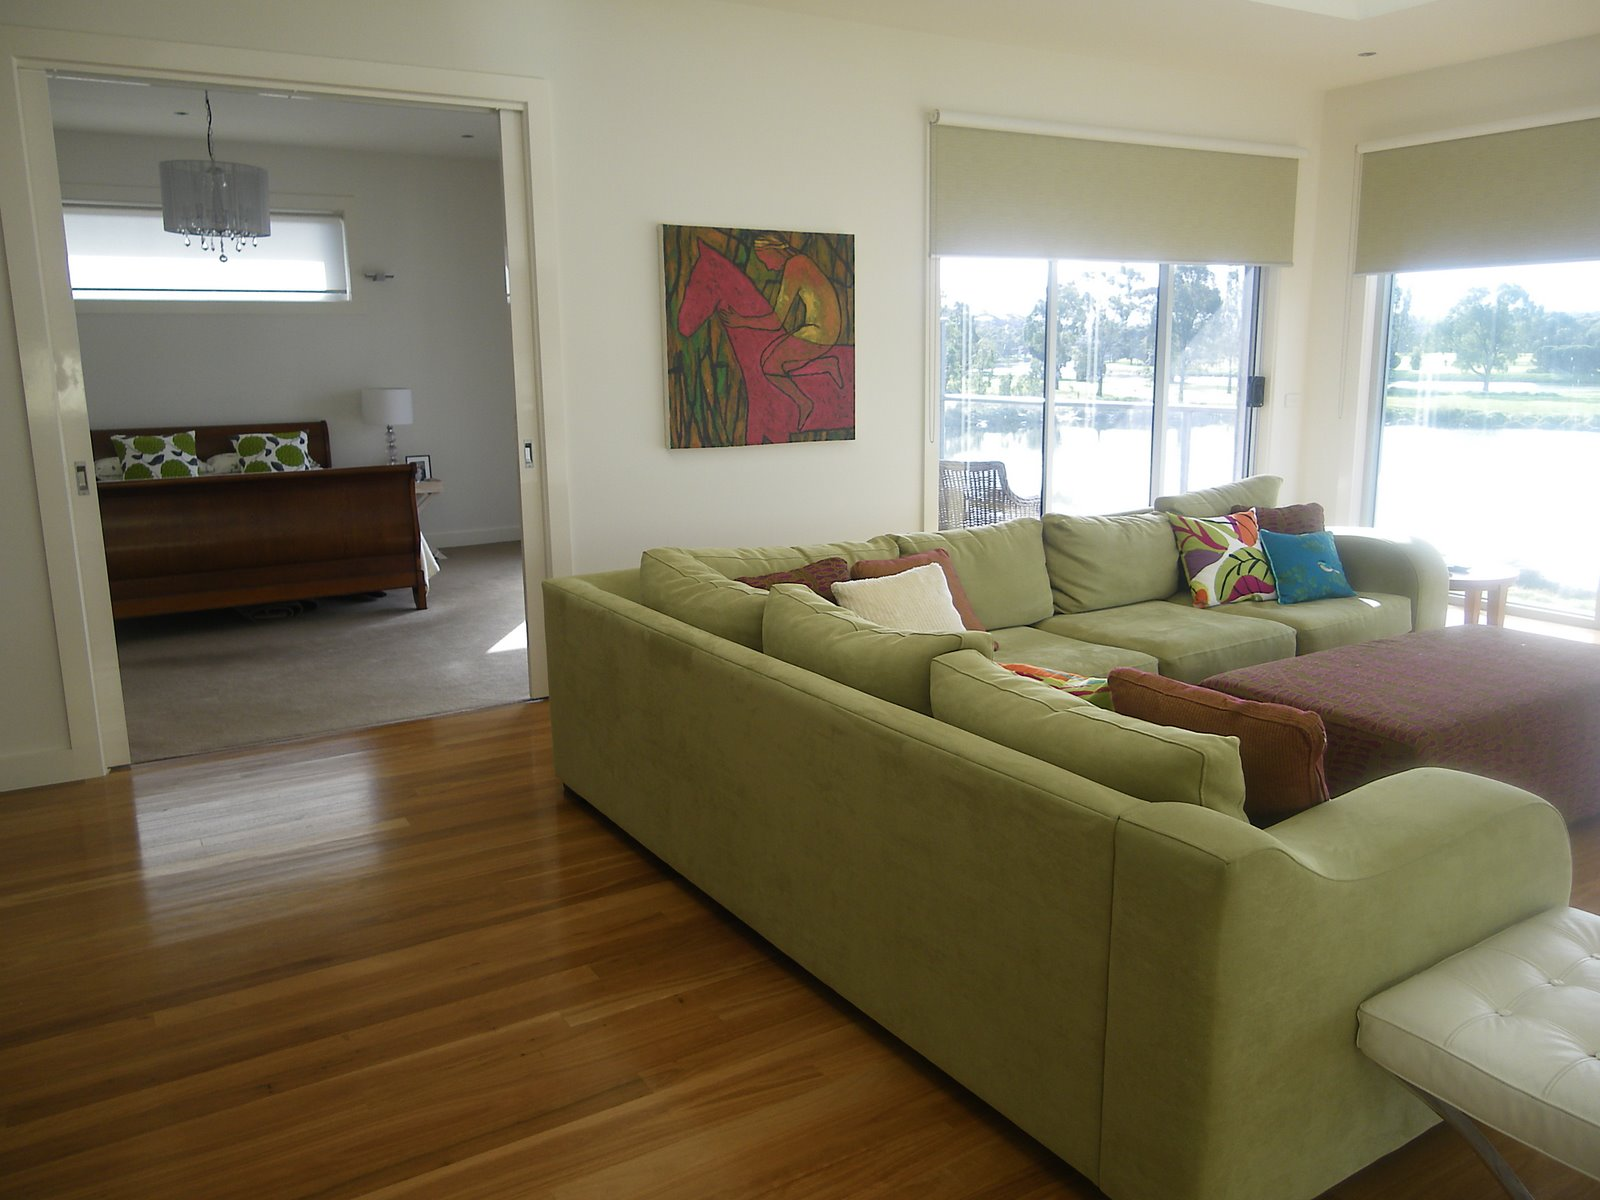 Decorating A Green Couch